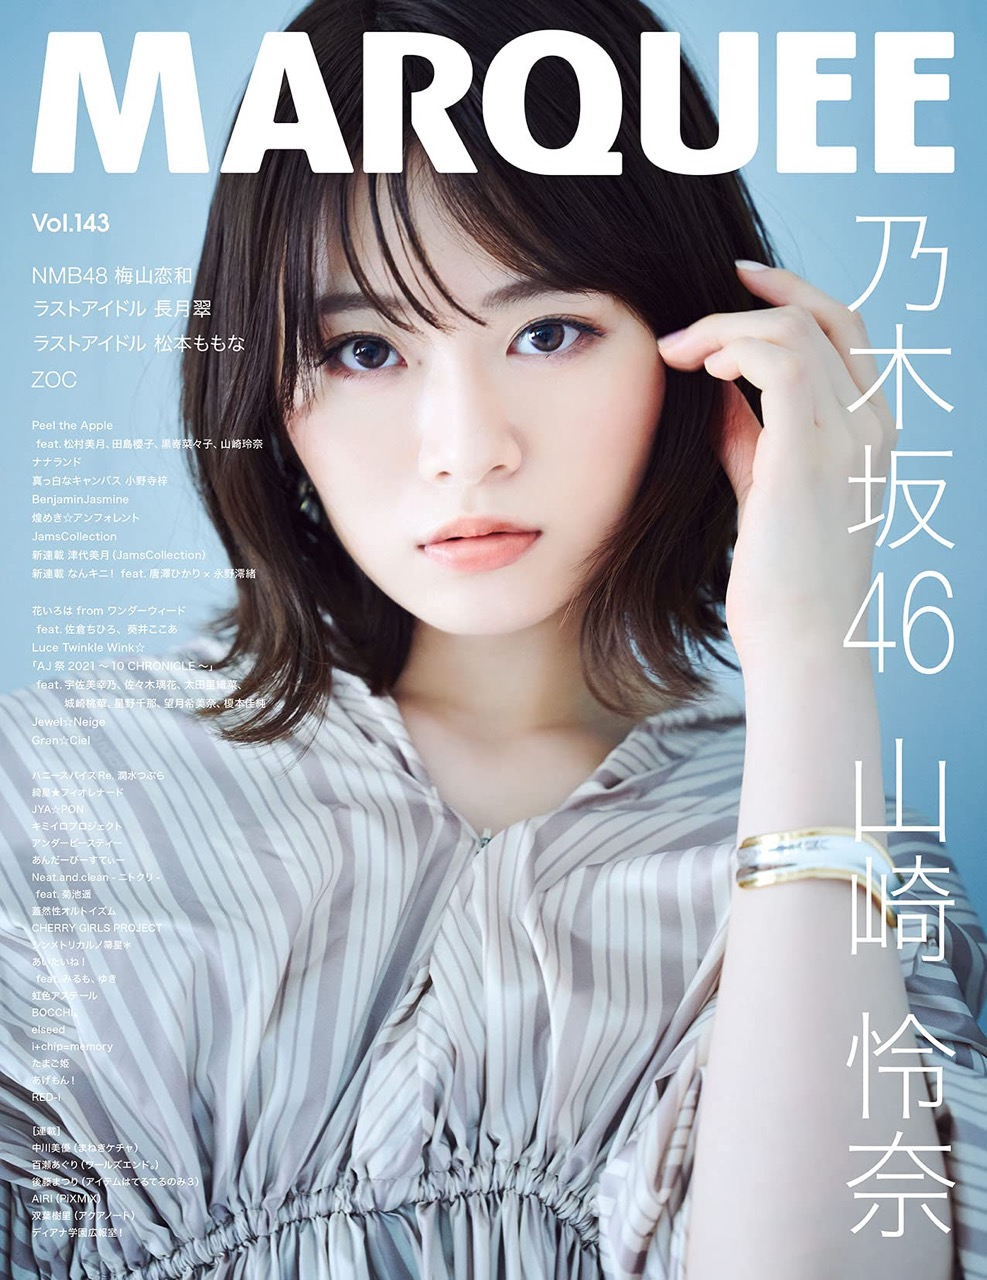 MARQUEE Vol.143